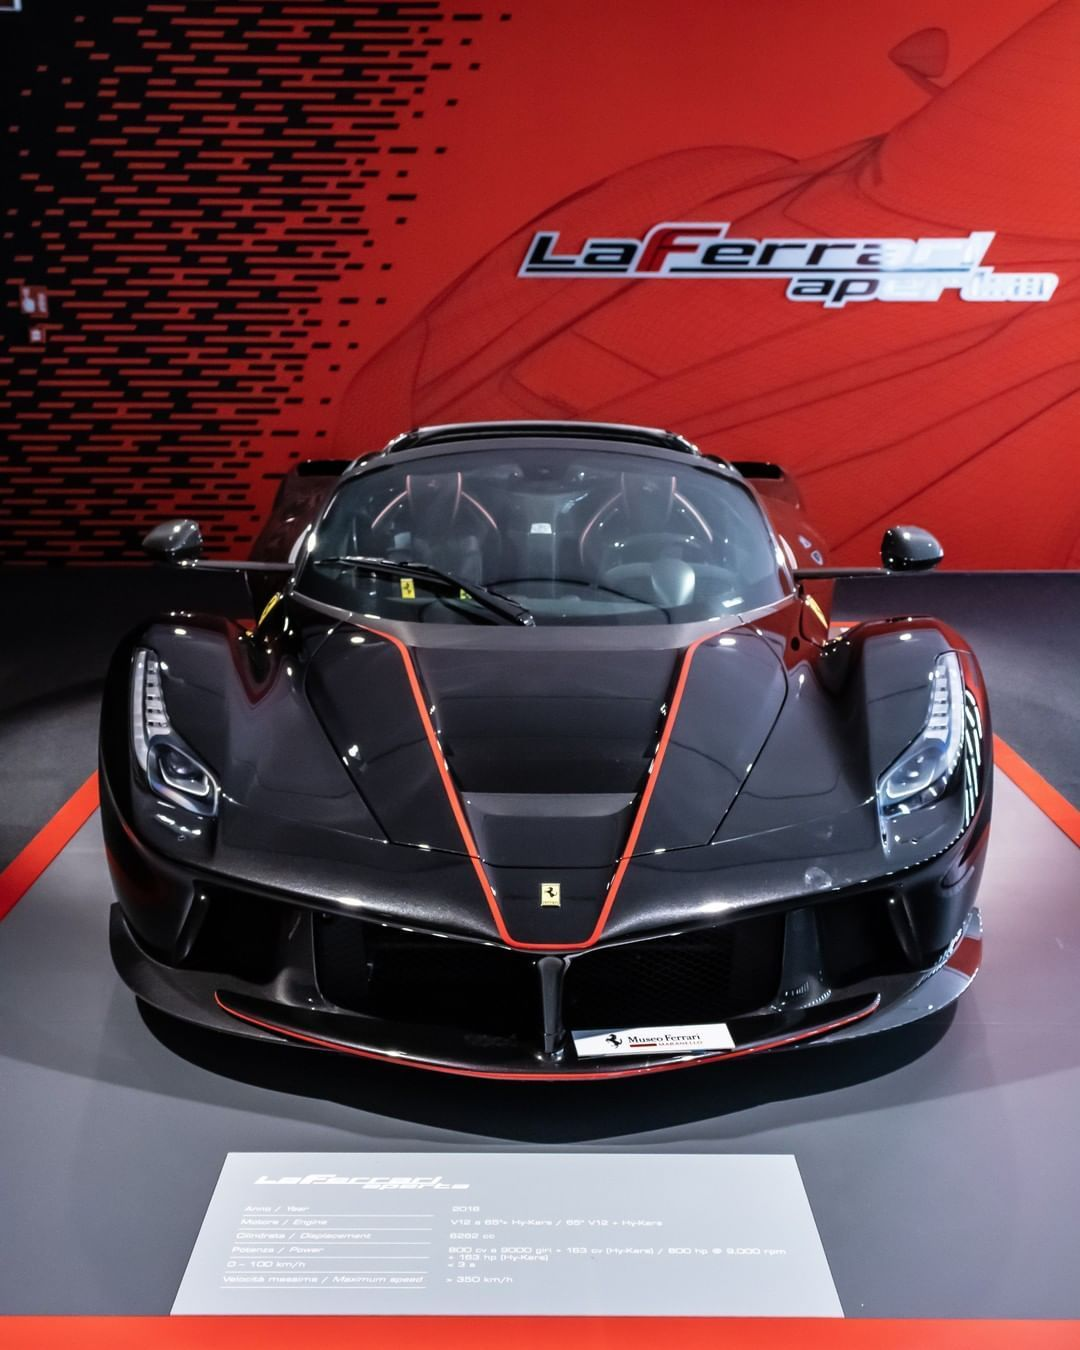 Pin By Martin Reeves On Supercars In 2020 Super Cars Ferrari Laferrari Super Luxury Cars